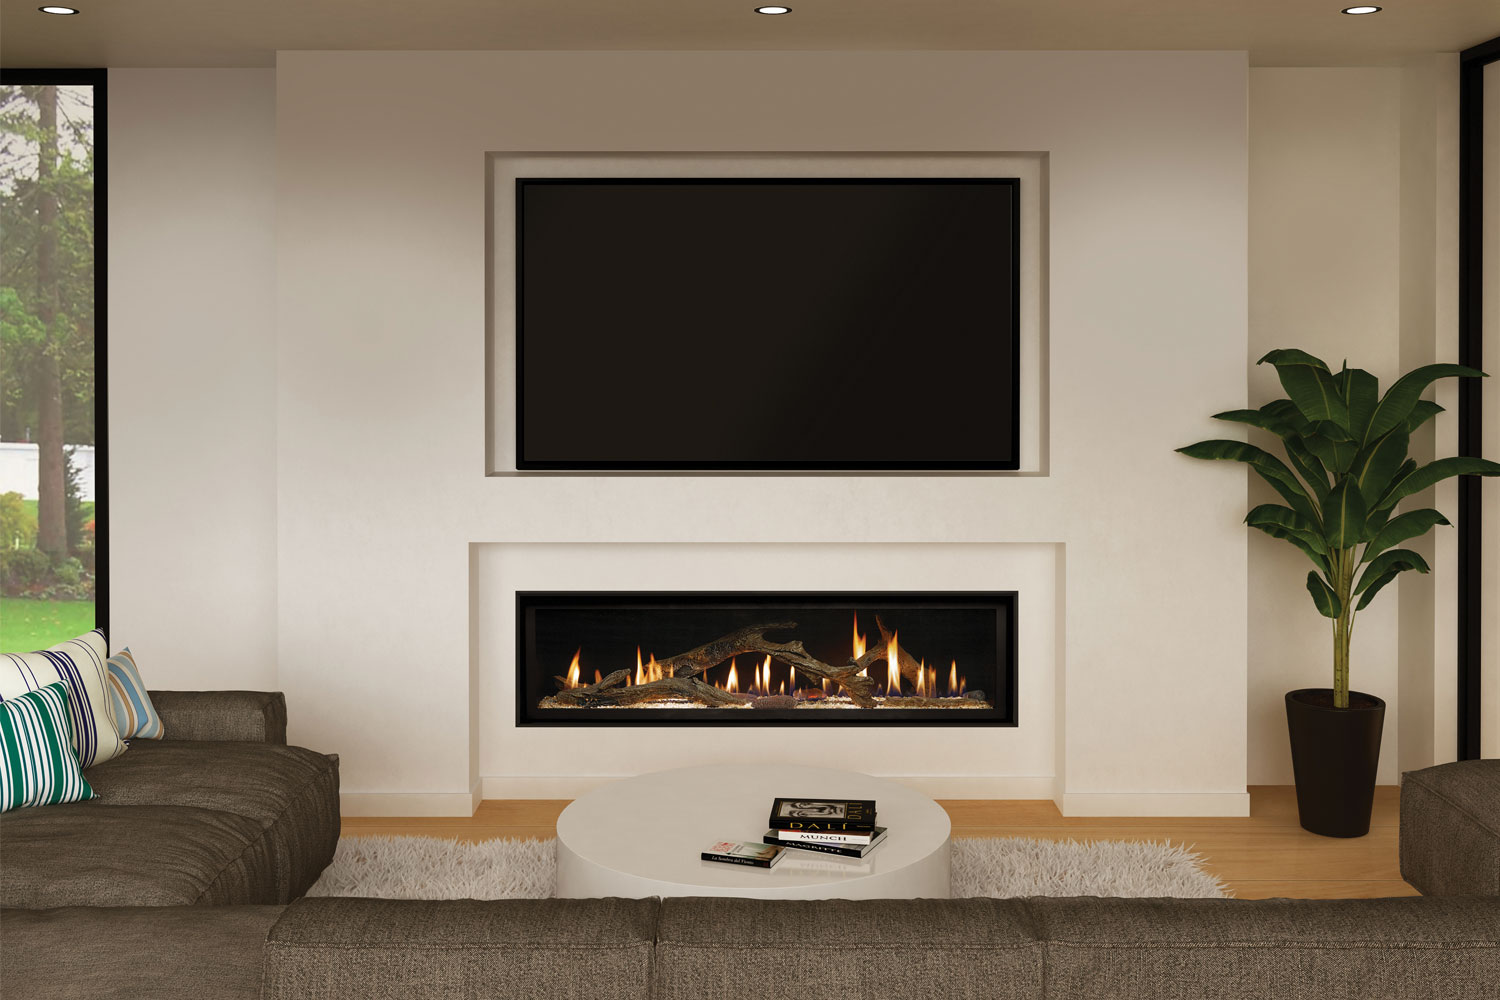 The Linear Look Custom Fireplaces Completehome